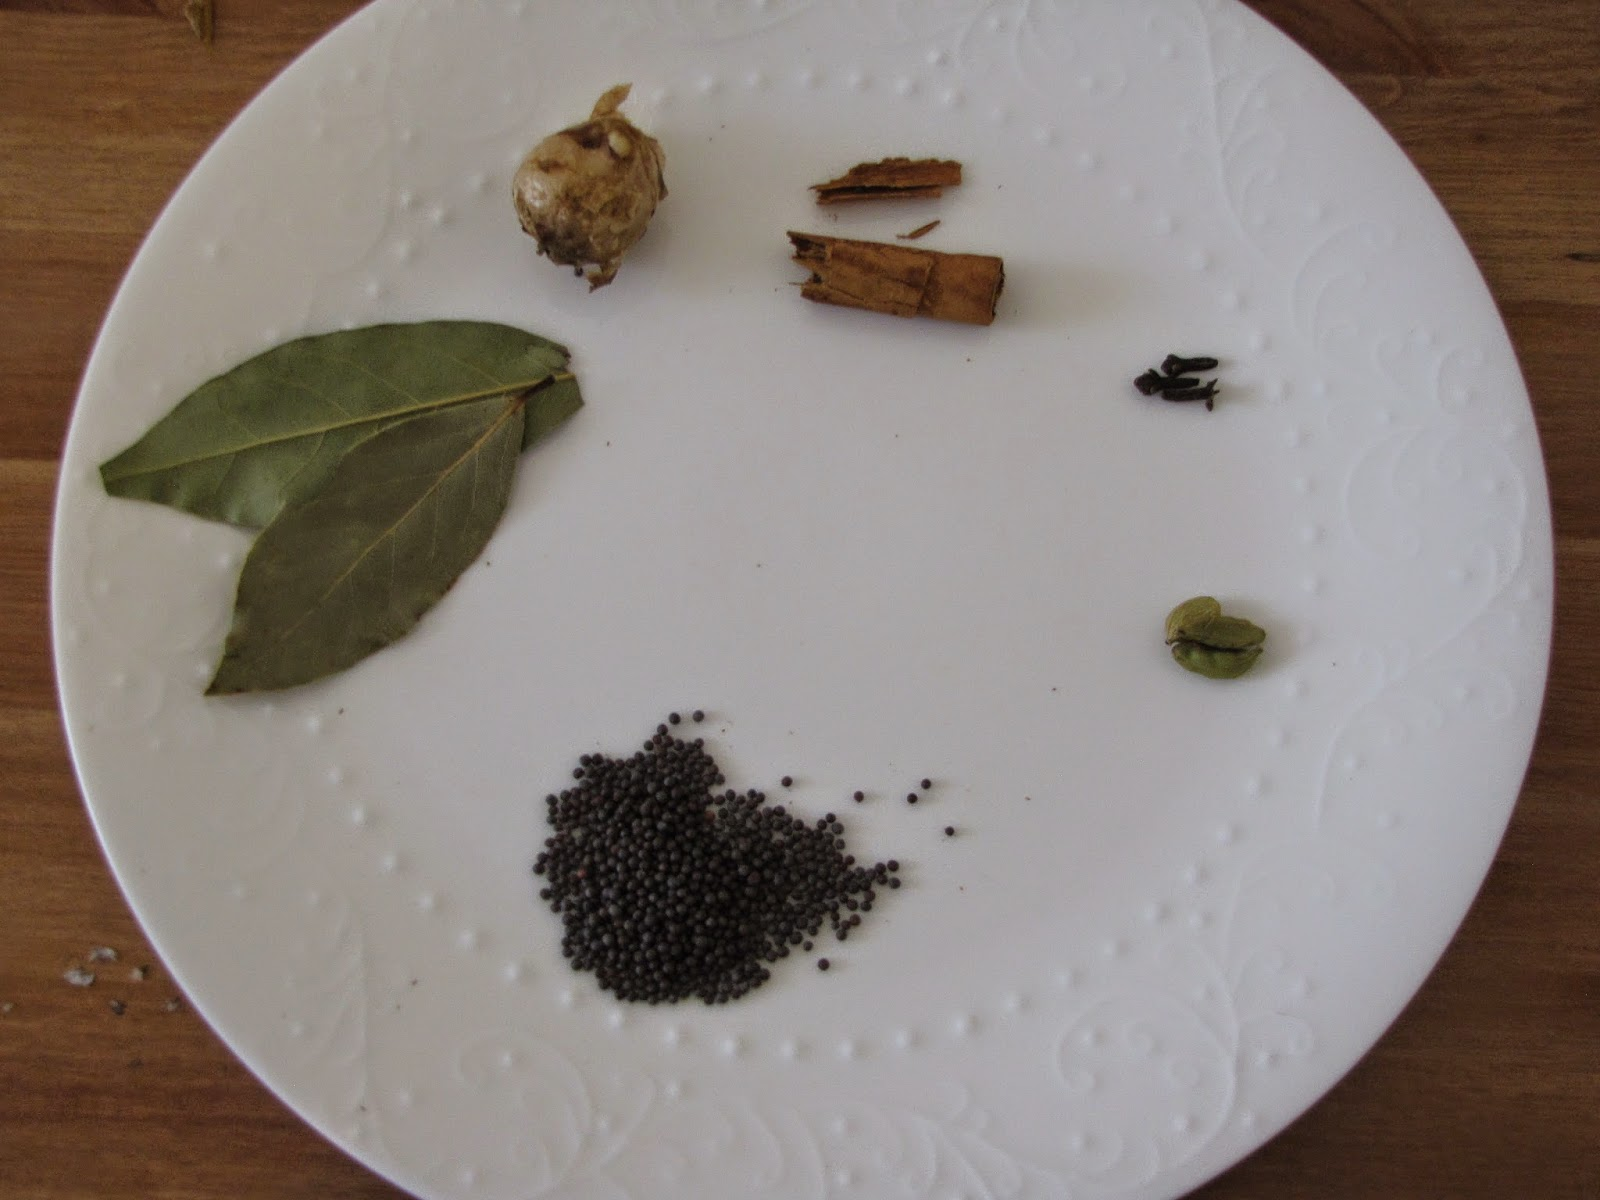 Bay leaves, ginger, cinnamon, cloves, cardamon pods and mustard seeds on a white plate